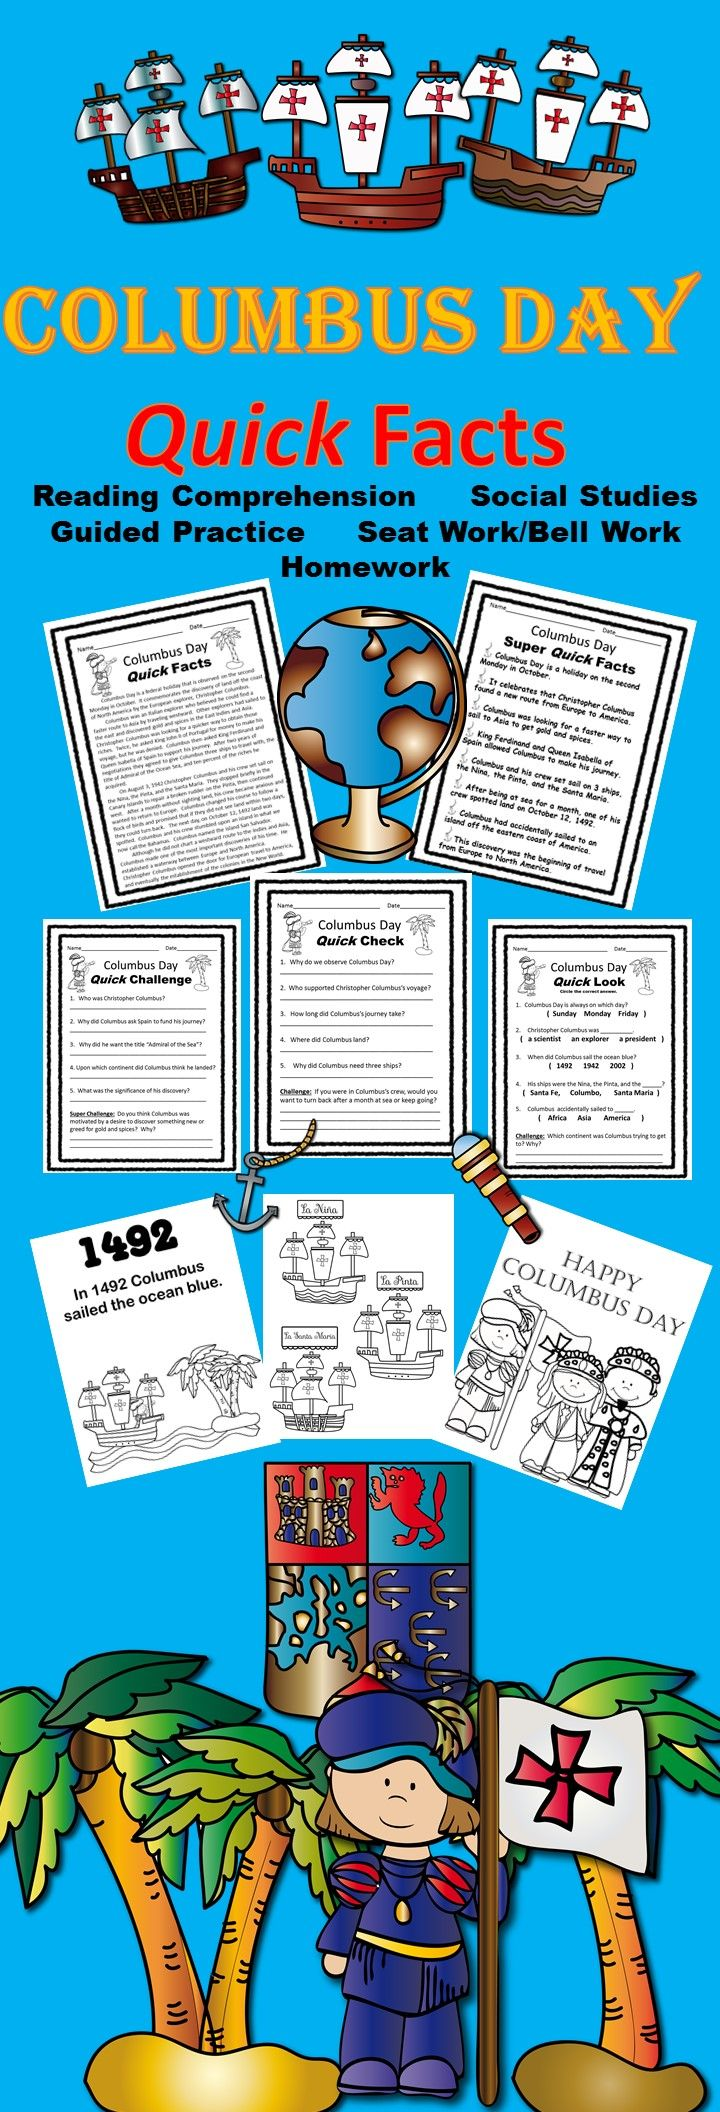 Reading Comprehension Social Studies Mini Lesson 3 Levels Of Instruction Seat Work Be History Teaching Resources Literacy Activities Homeschool History Columbus day reading comprehension